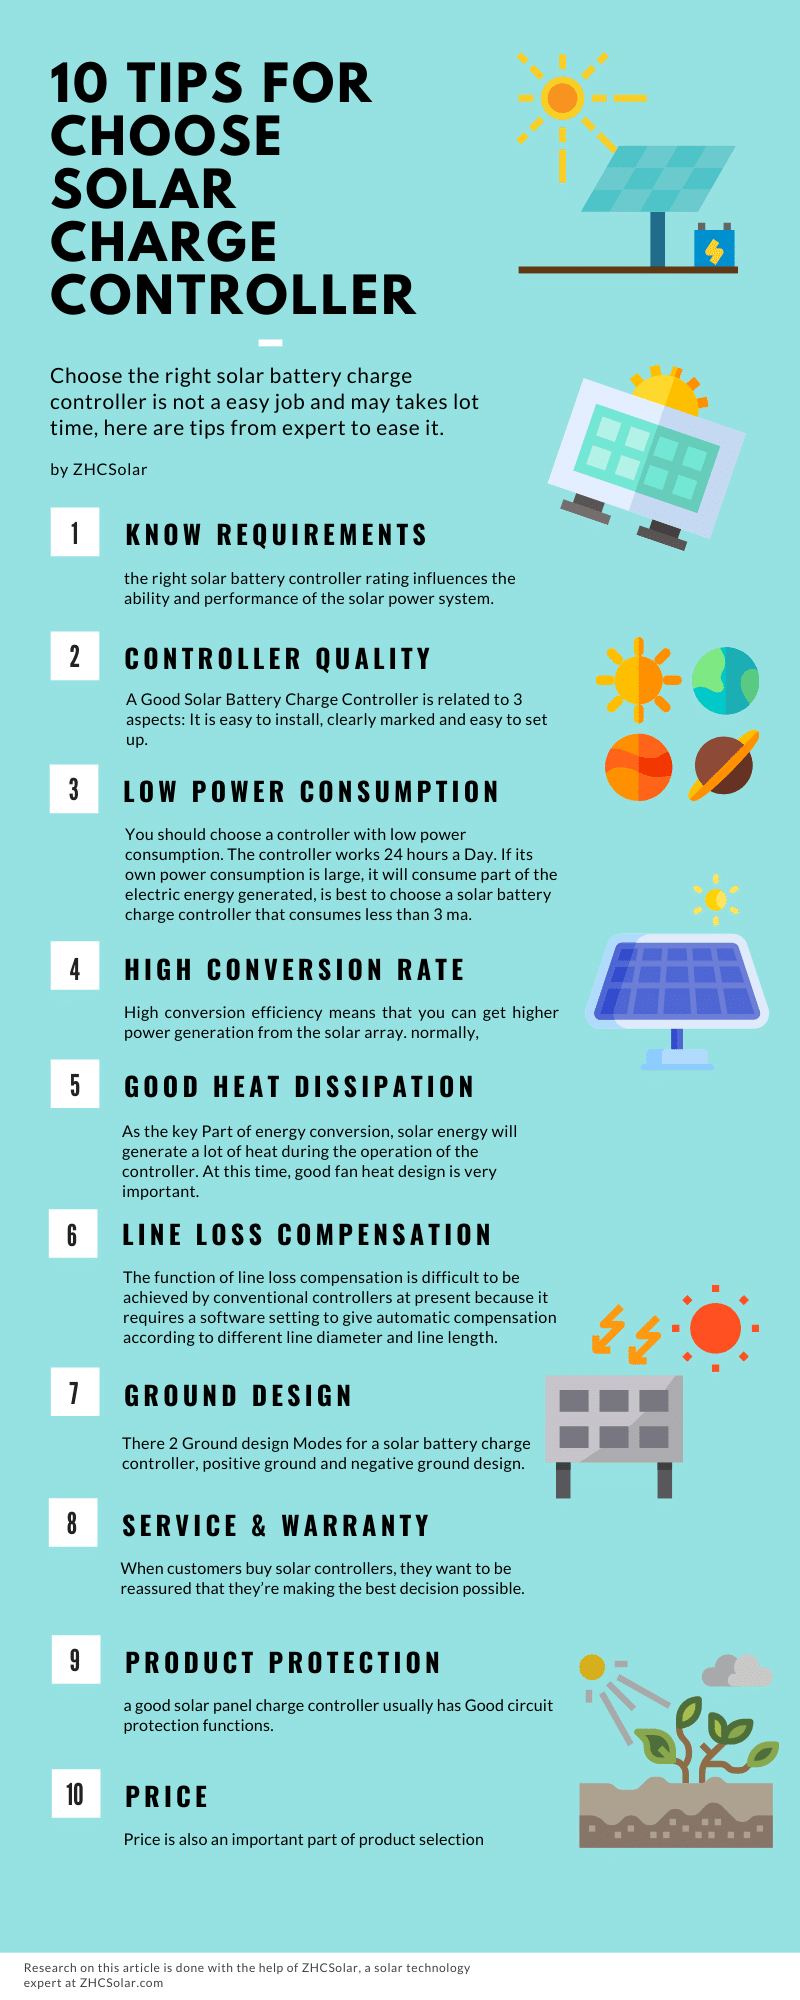 10 Tips for choose Solar Charge Controller10 Tips for choose Solar Charge Controller